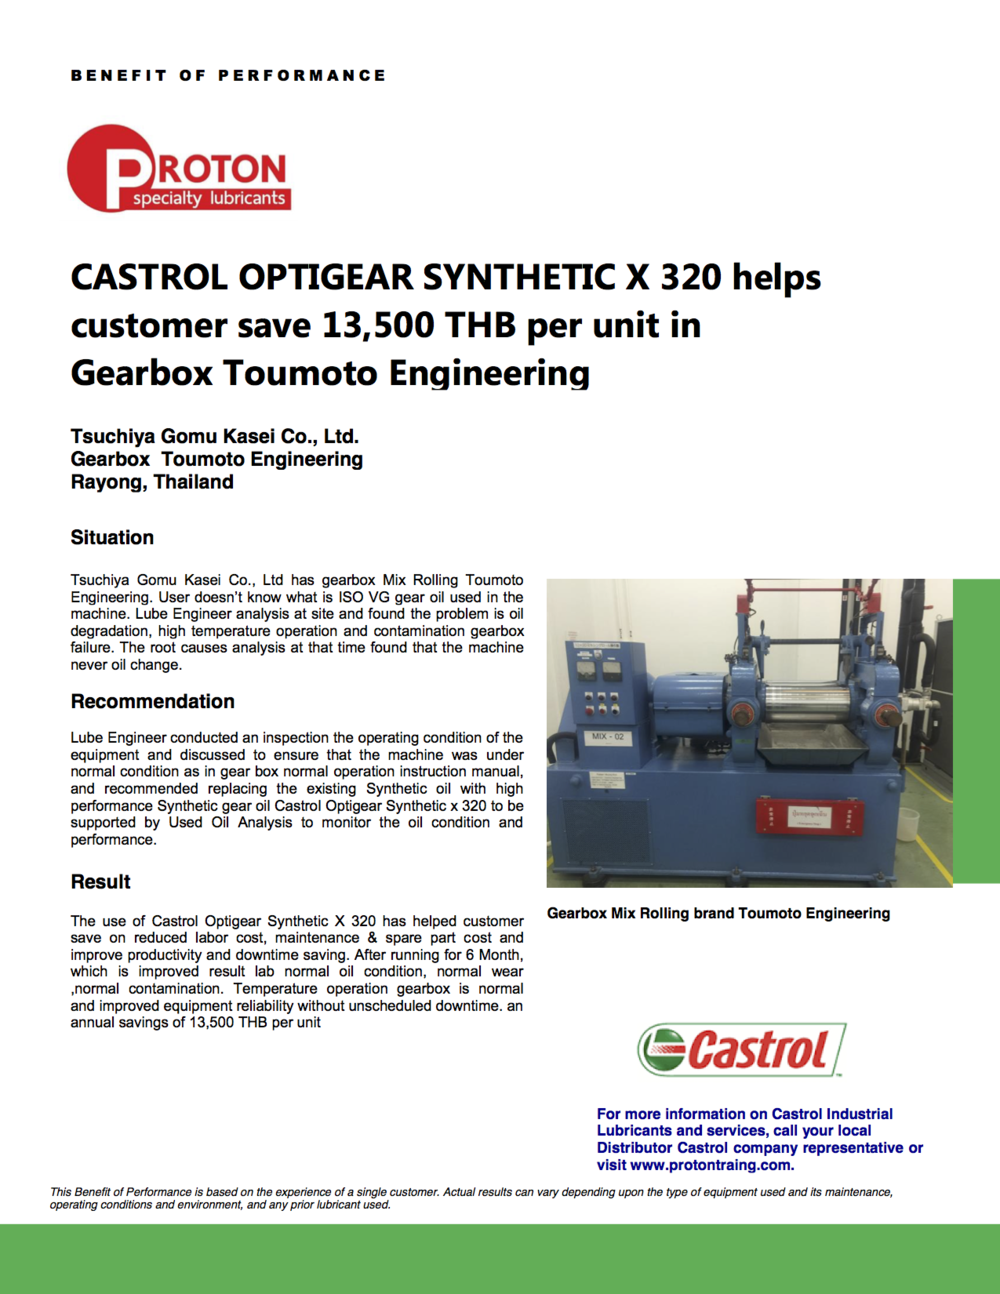 BOP_Castrol _Optigear Synthetic X 320 (TGK).png